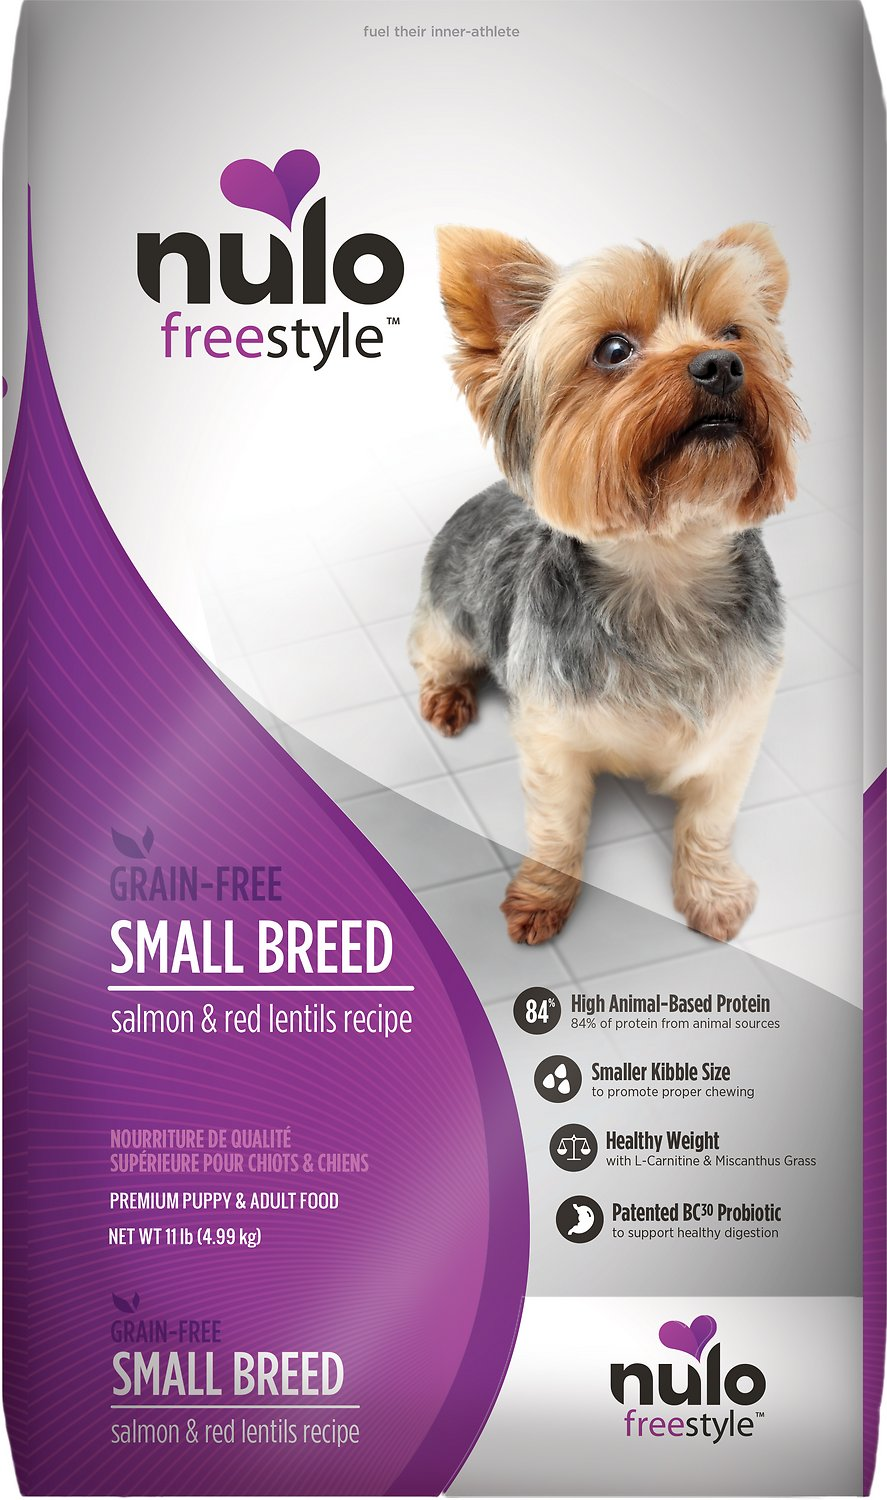 Nulo Dog FreeStyle Small Breed Salmon & Red Lentils Recipe Grain-Free Dry Dog Food Image